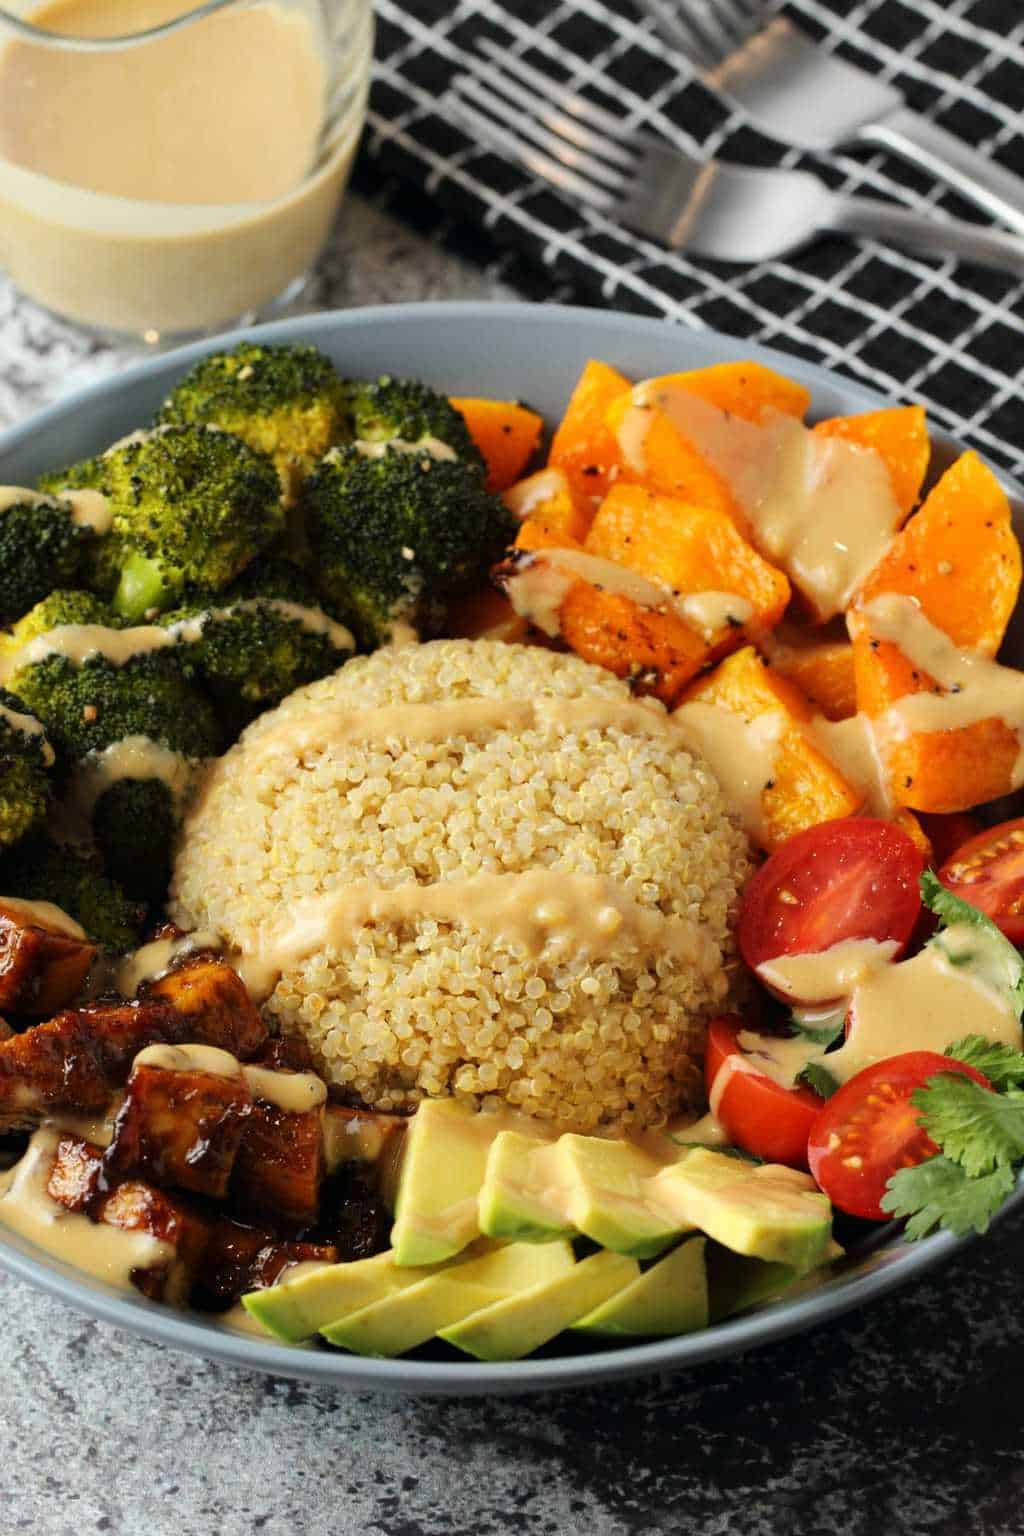 Bowl with quinoa, vegetables and tofu topped with a drizzled dressing.